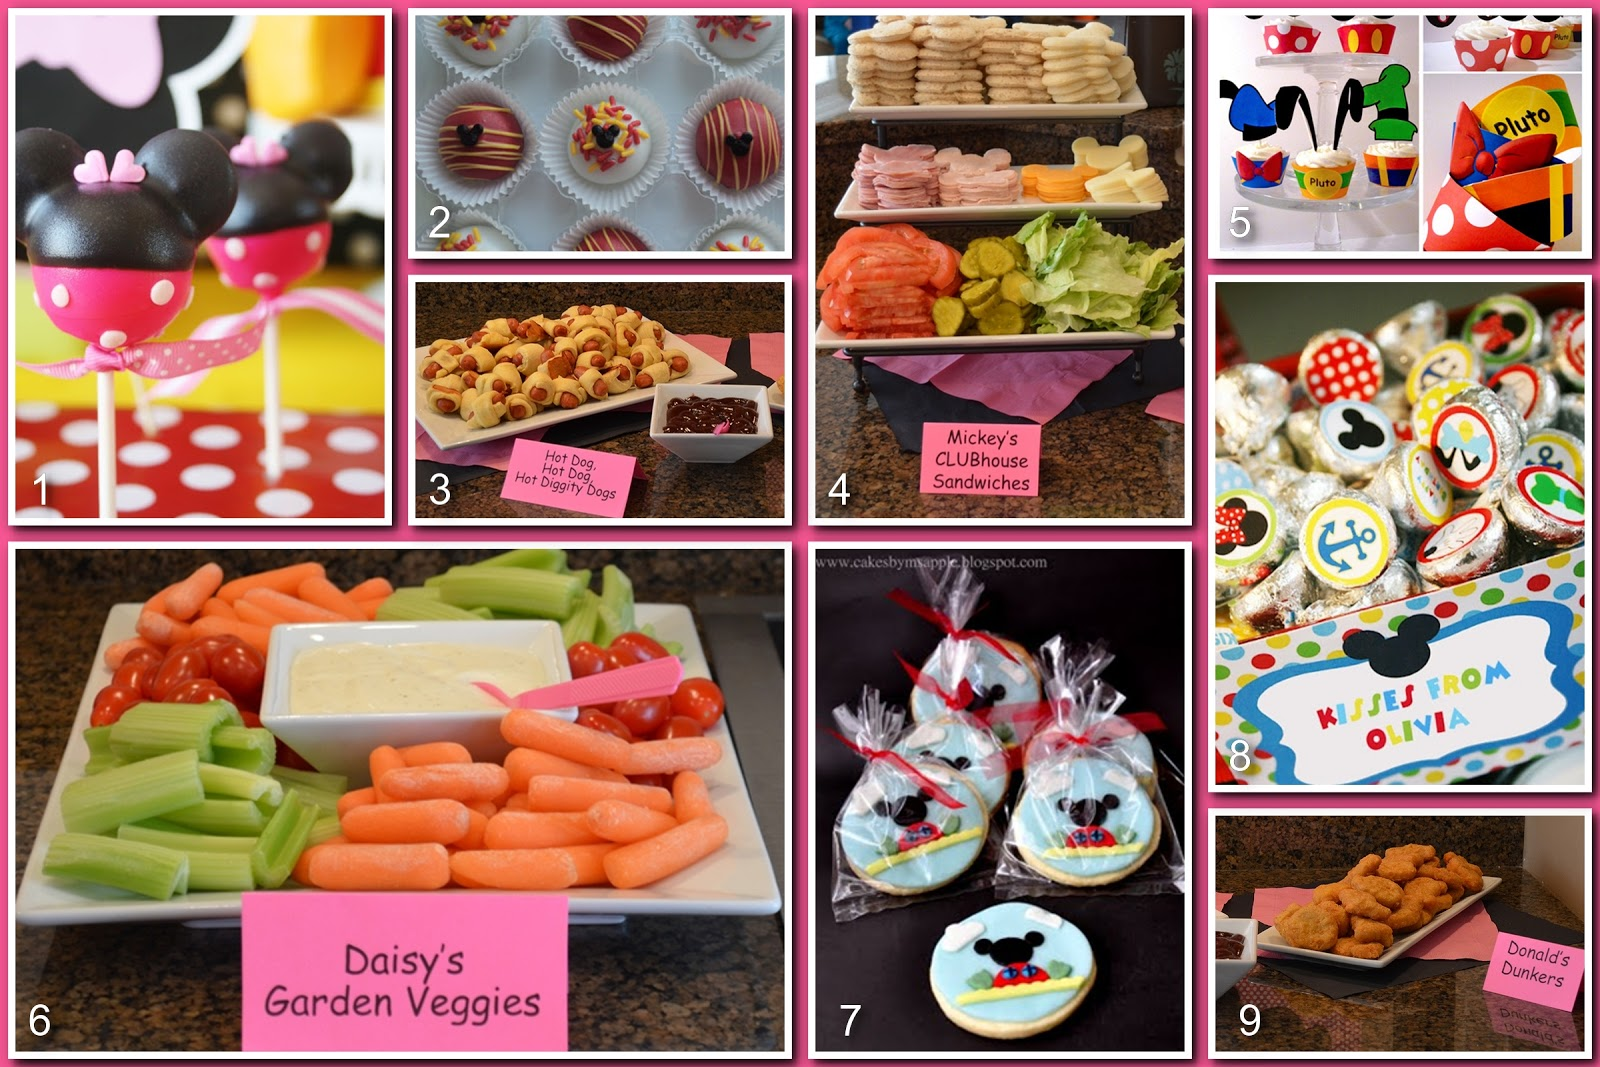 This mickey mouse themed food idea is so easy and super fun to make. All you need are marshmallows, straws, Disney used plastic swirly ones, I used paper ones I found in dollar section at Target or Michael's, Milk chocolate discs, red colored candy discs, red sugar, optional, parchment paper and .